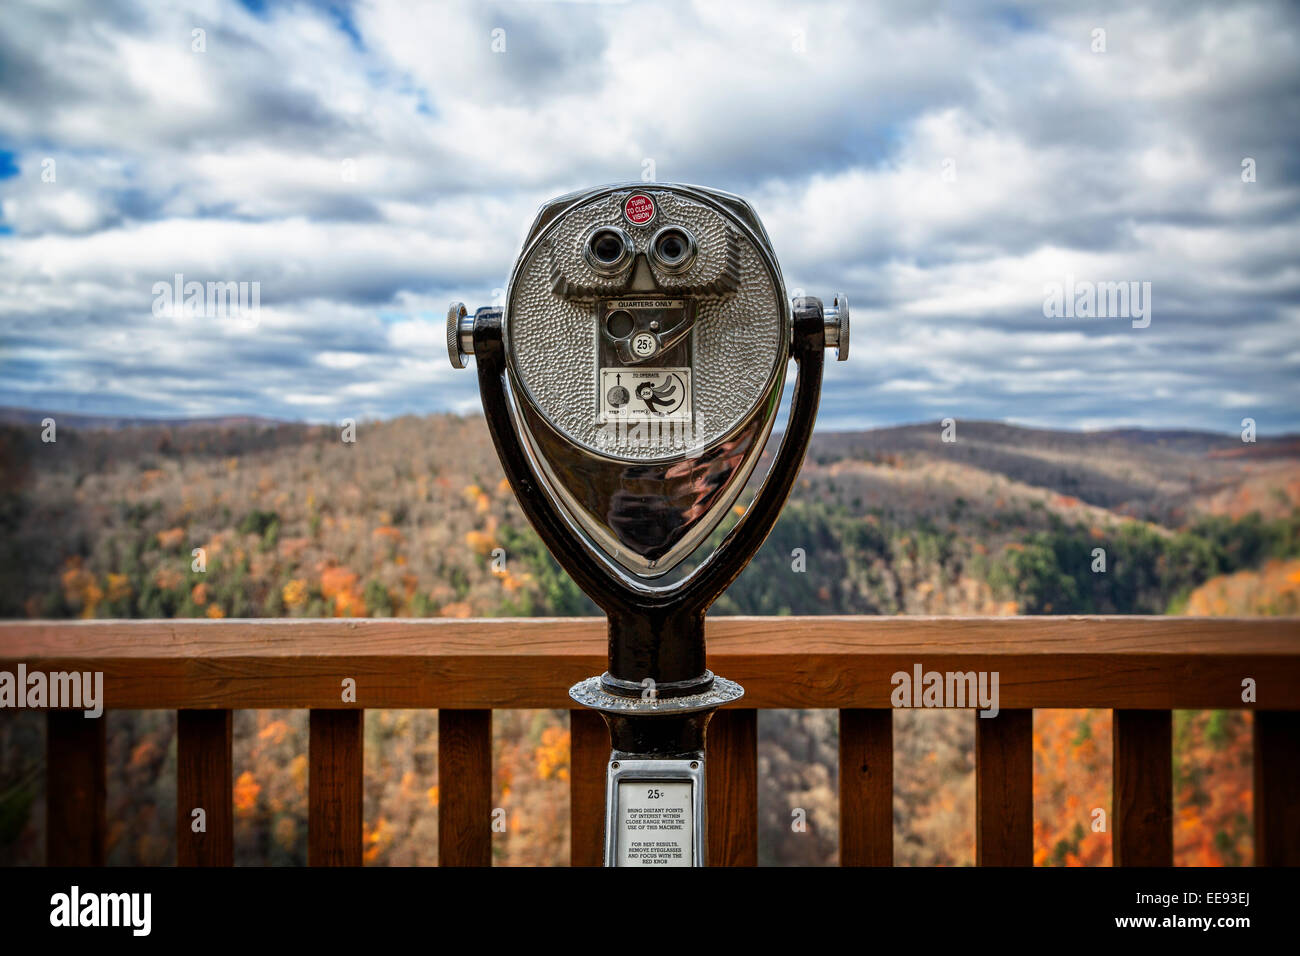 Overlook viewer in the fall at Pennsylvania Grand Canyon - Stock Image